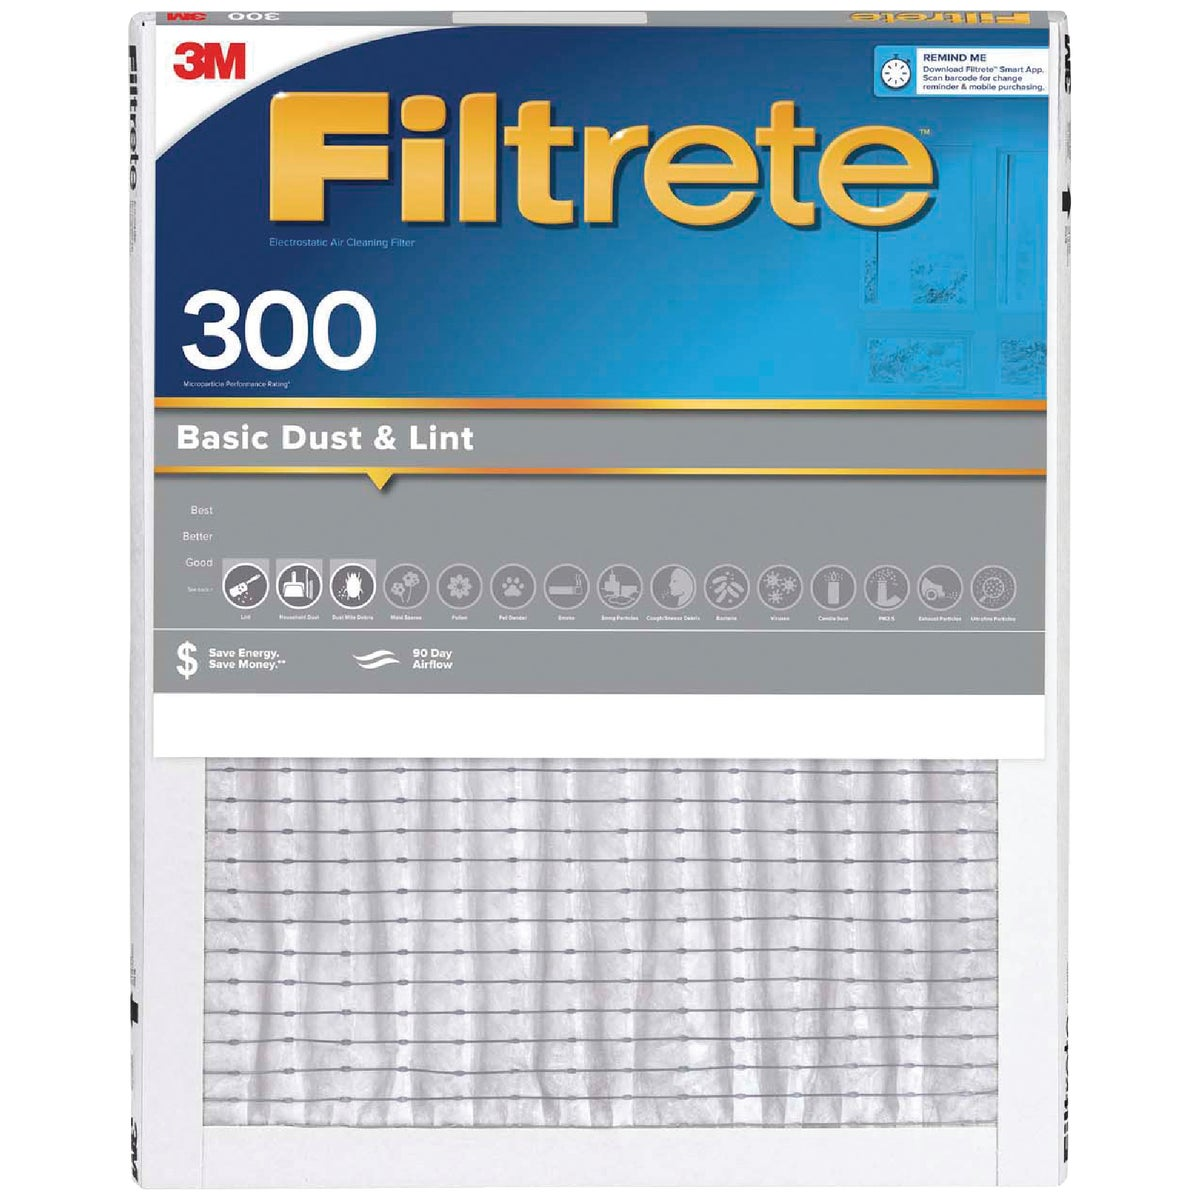 3M Filtrete 20 In. x 20 In. x 1 In. Dust Reduction 300 MPR Furnace Filter